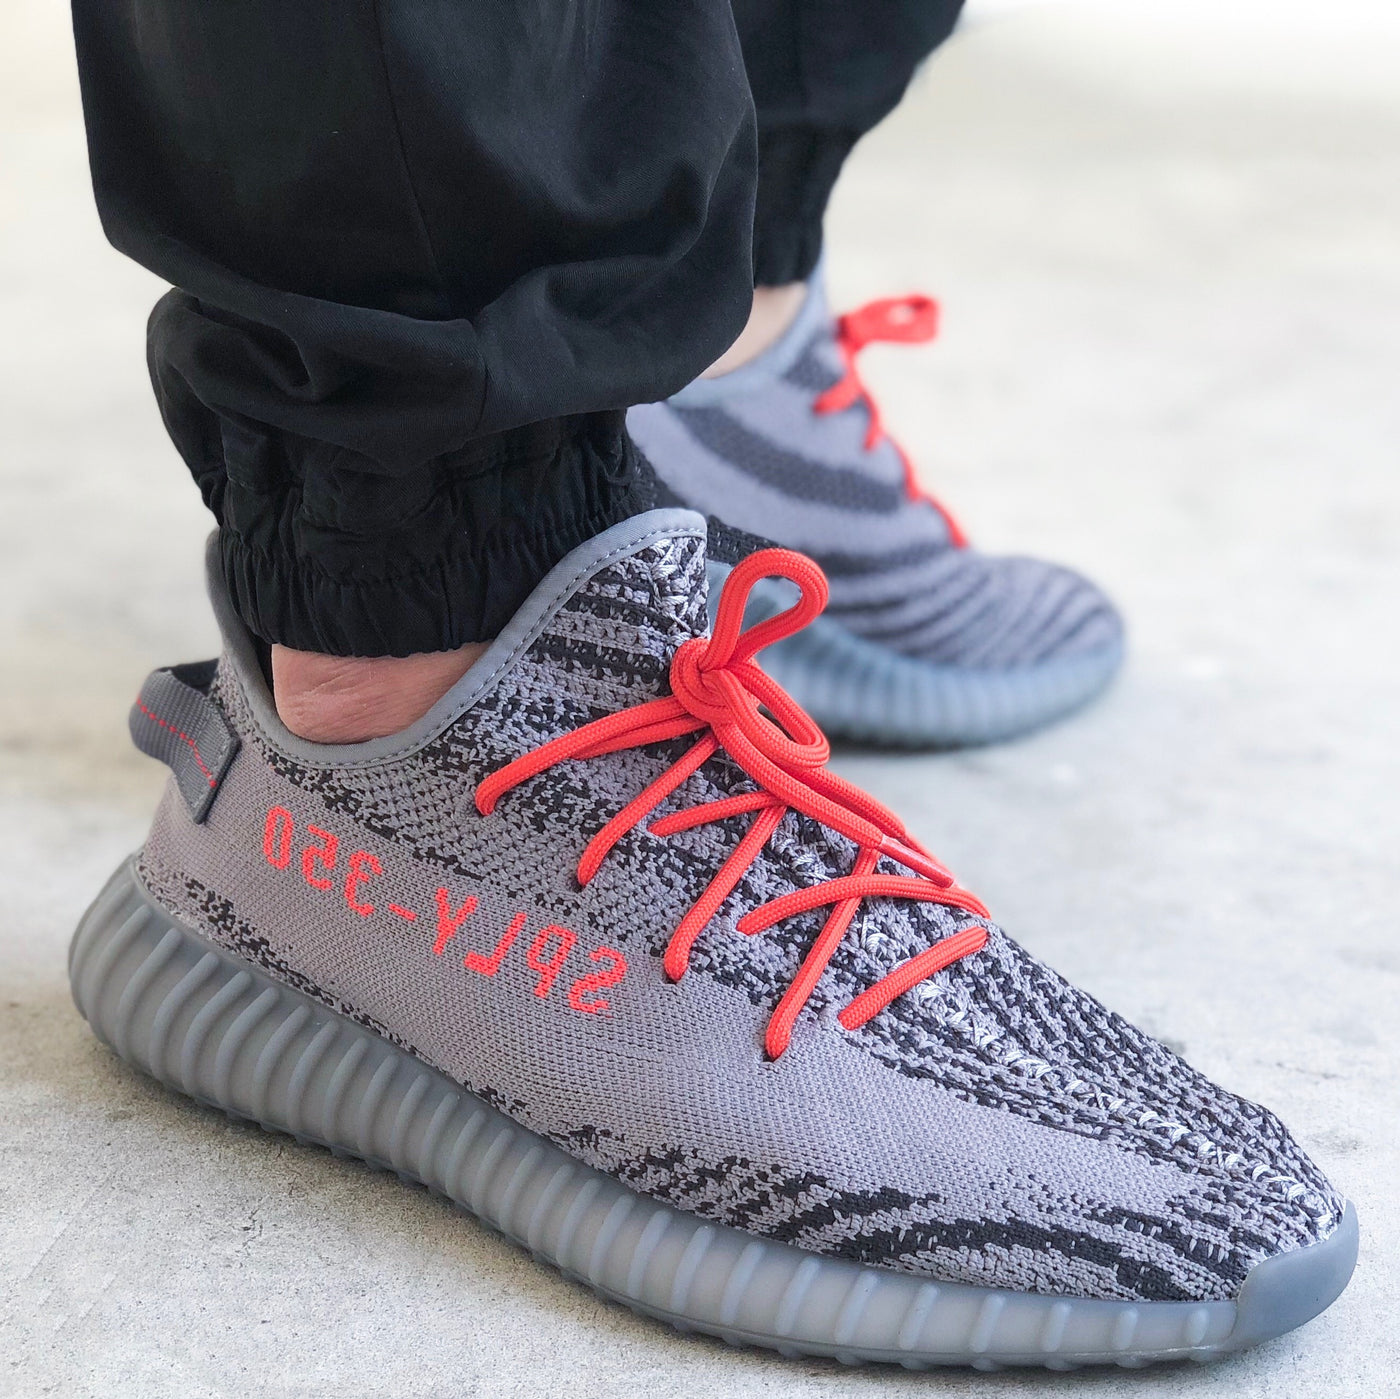 YEEZY BOOST 350 LACES